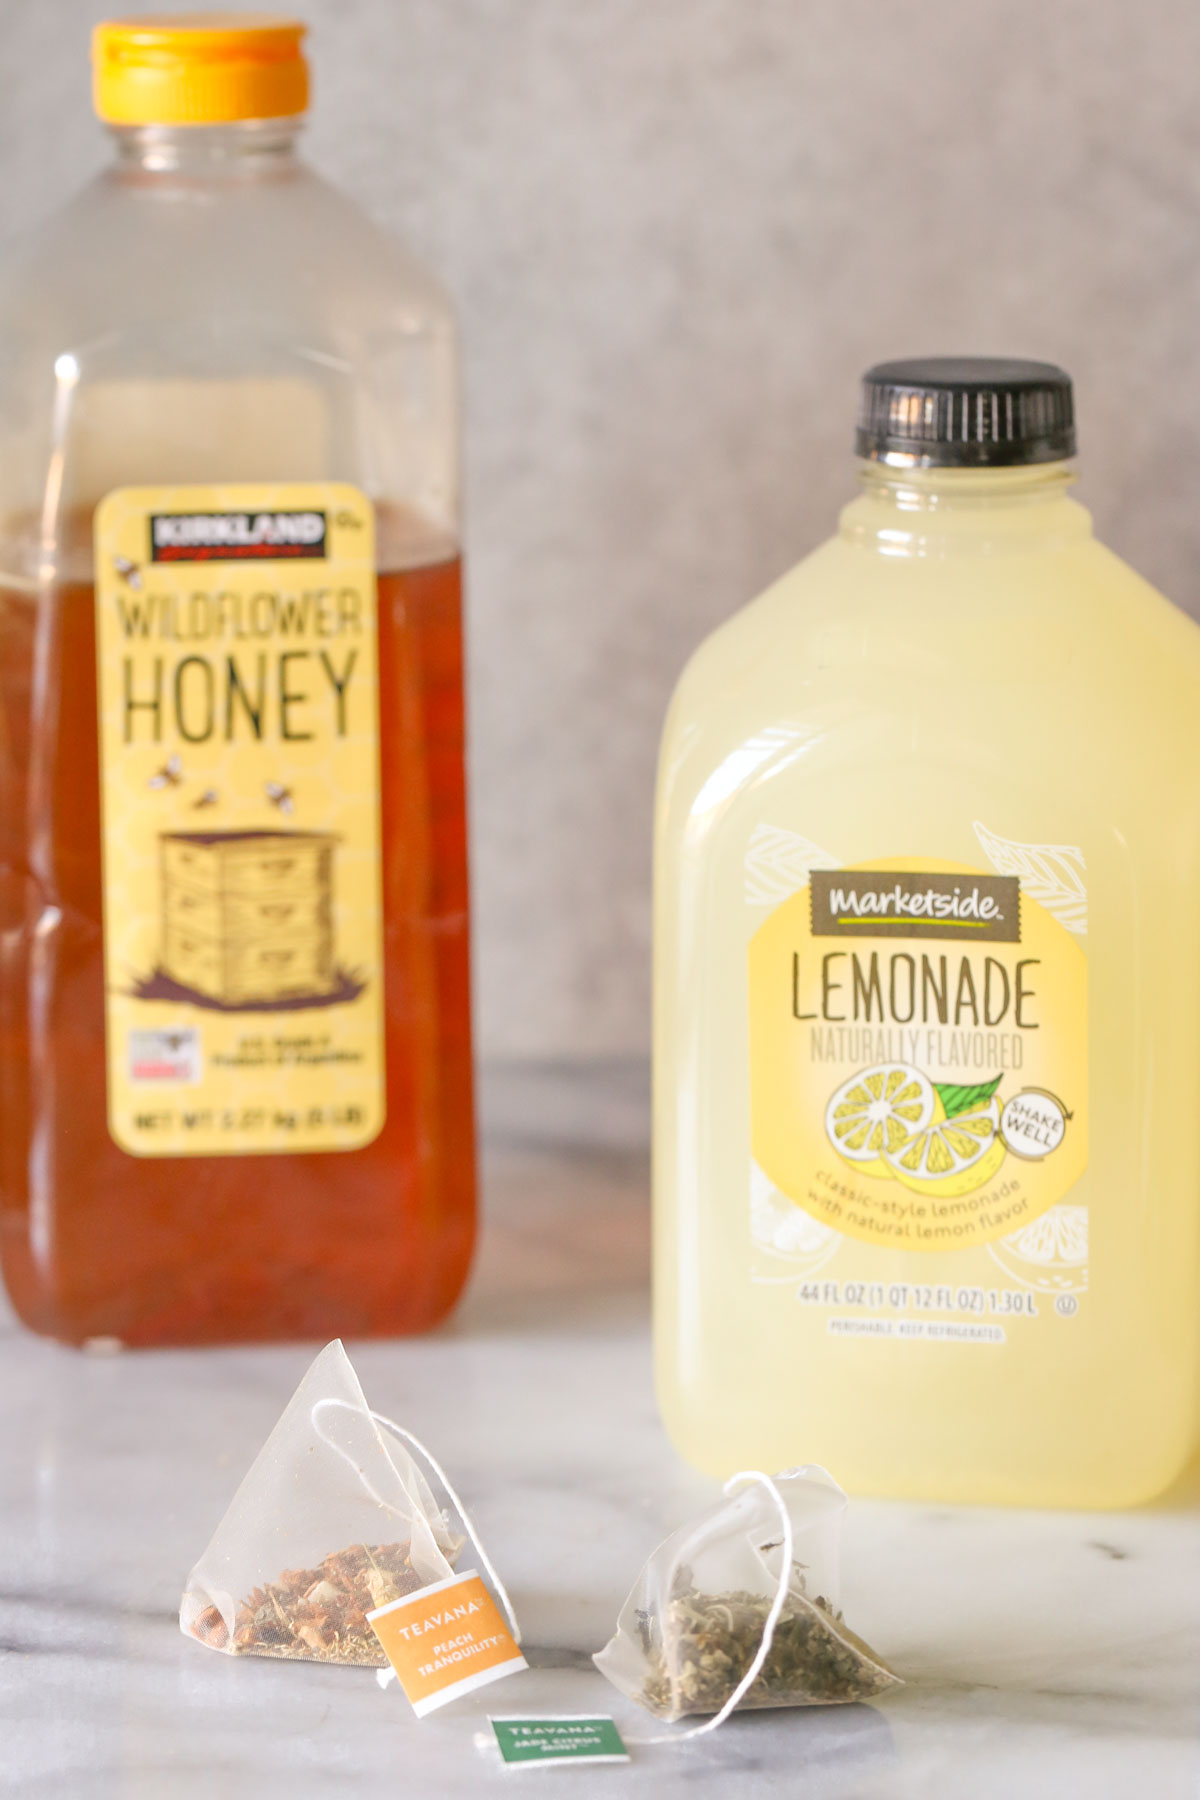 A Teavana Peach Tranquility tea sachet next to a Teavana Jade Citrus Mint tea sachet, with a jug of lemonade and a container of honey in the background, all ingredients for the Starbucks Medicine Ball Tea.